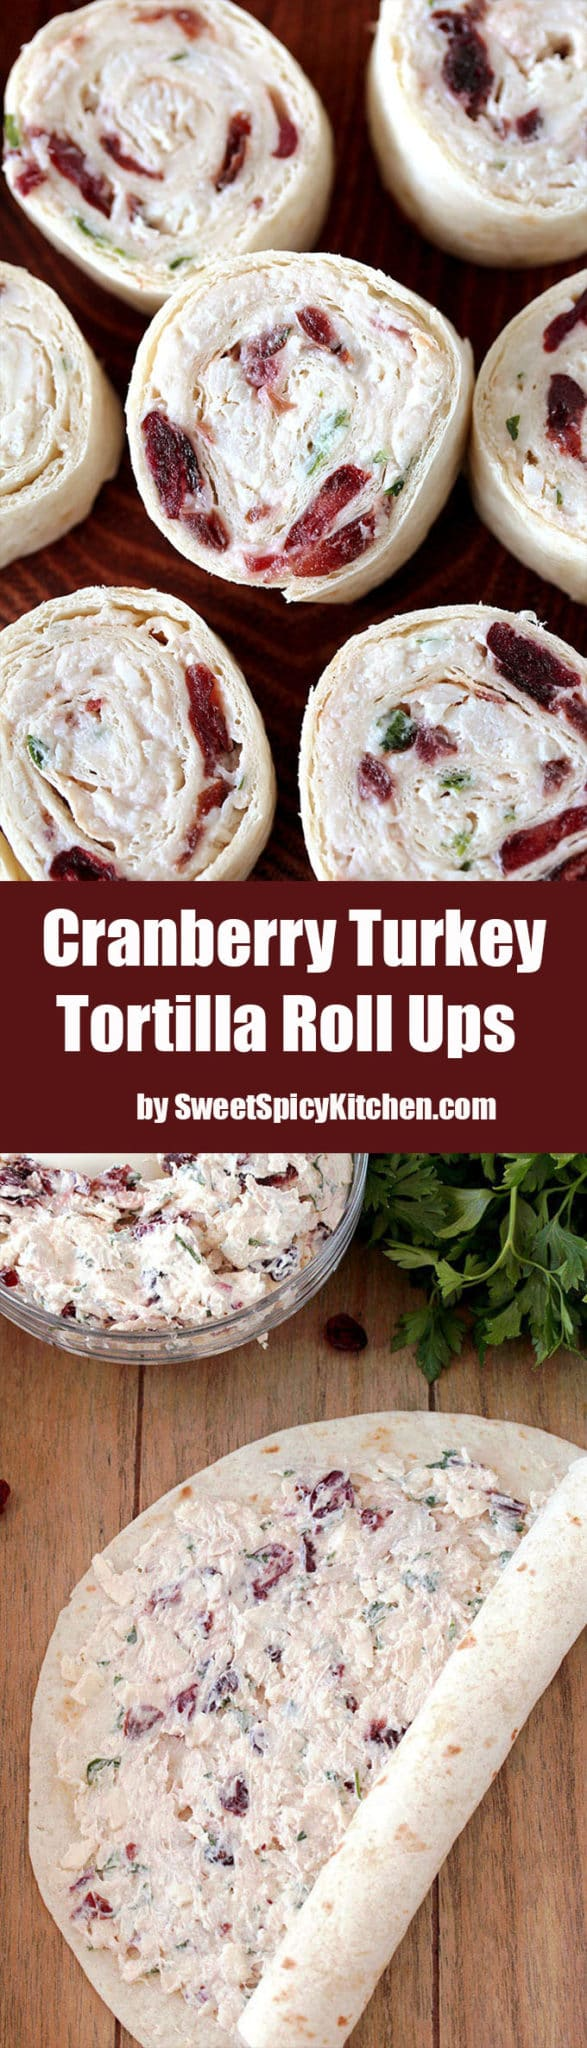 Cranberry Turkey Tortilla Roll Ups